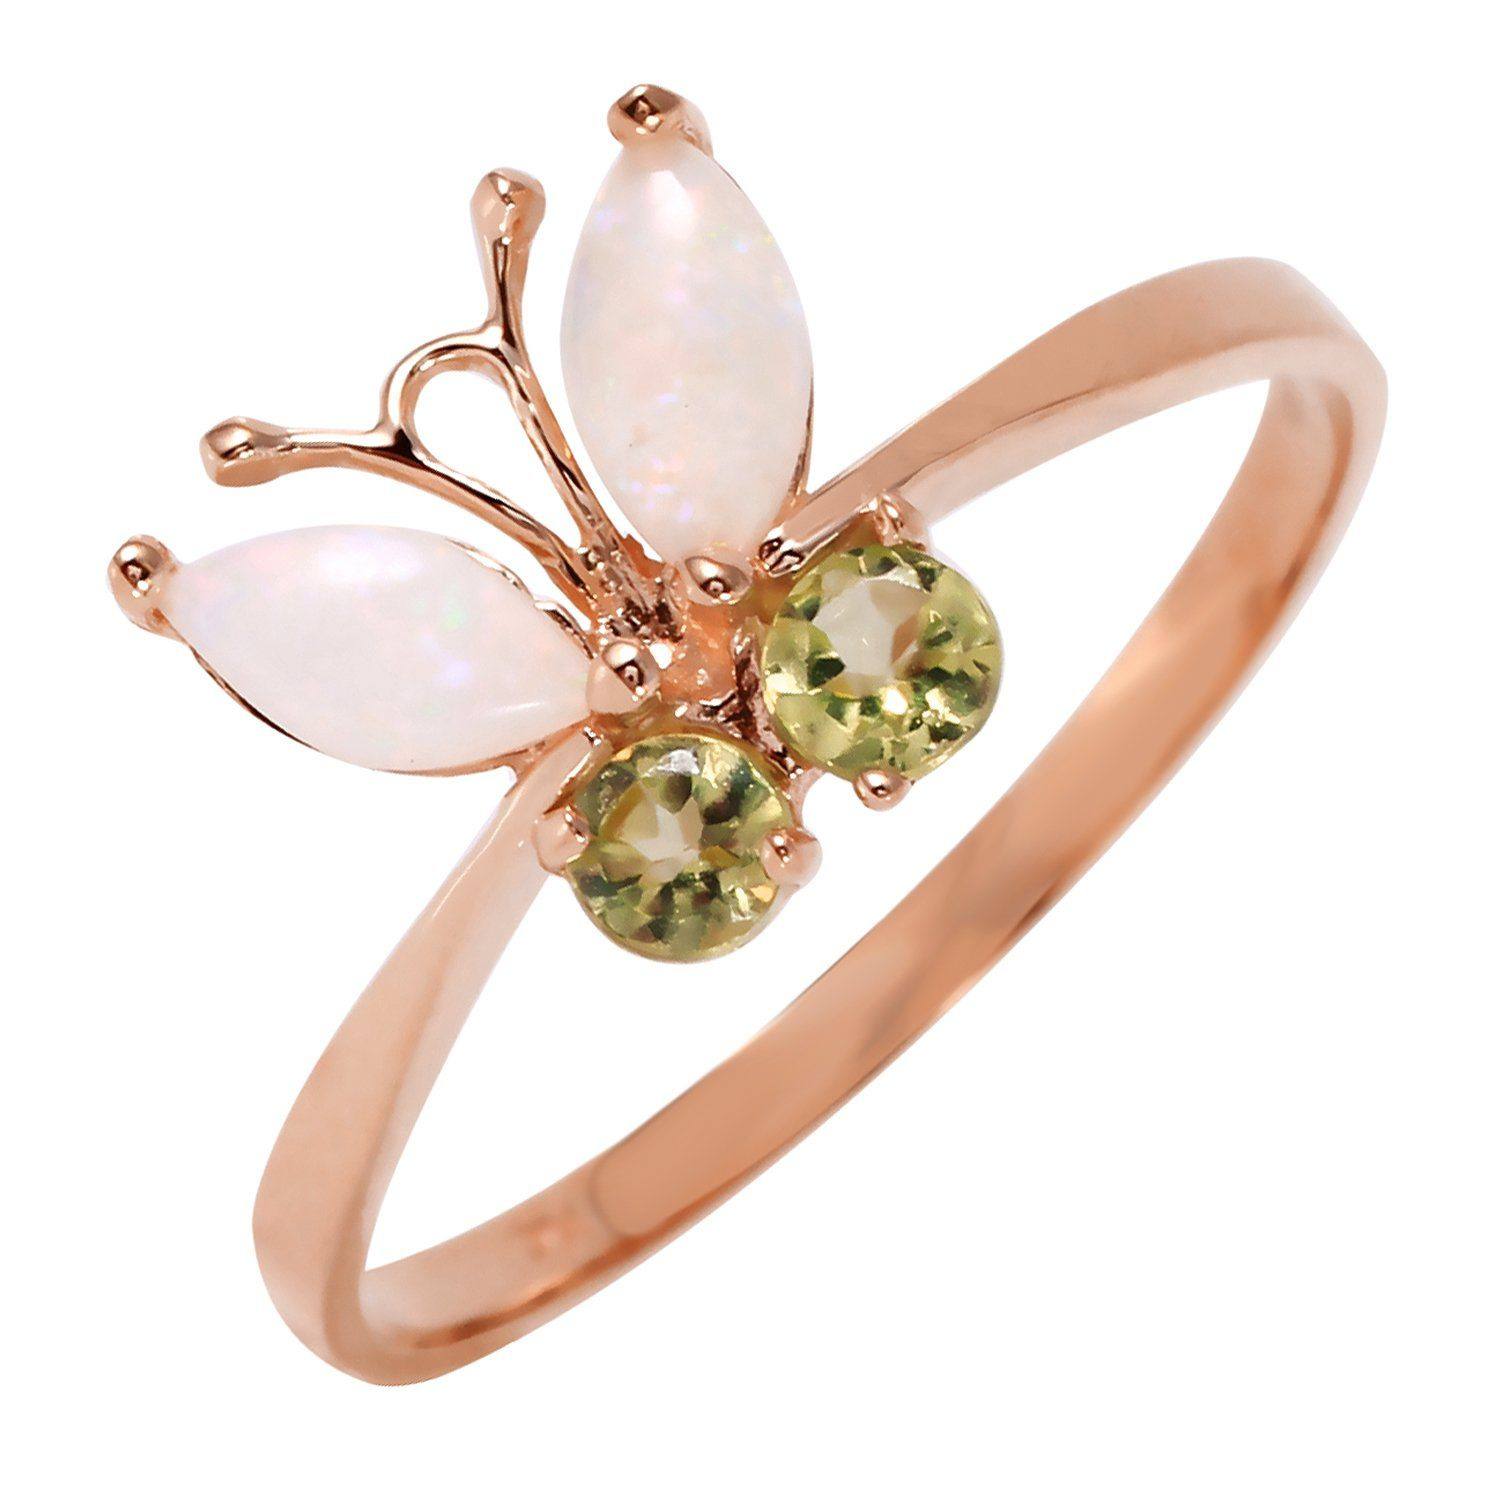 Ladies 14K Rose Gold Butterfly Ring with Opals & Peridots